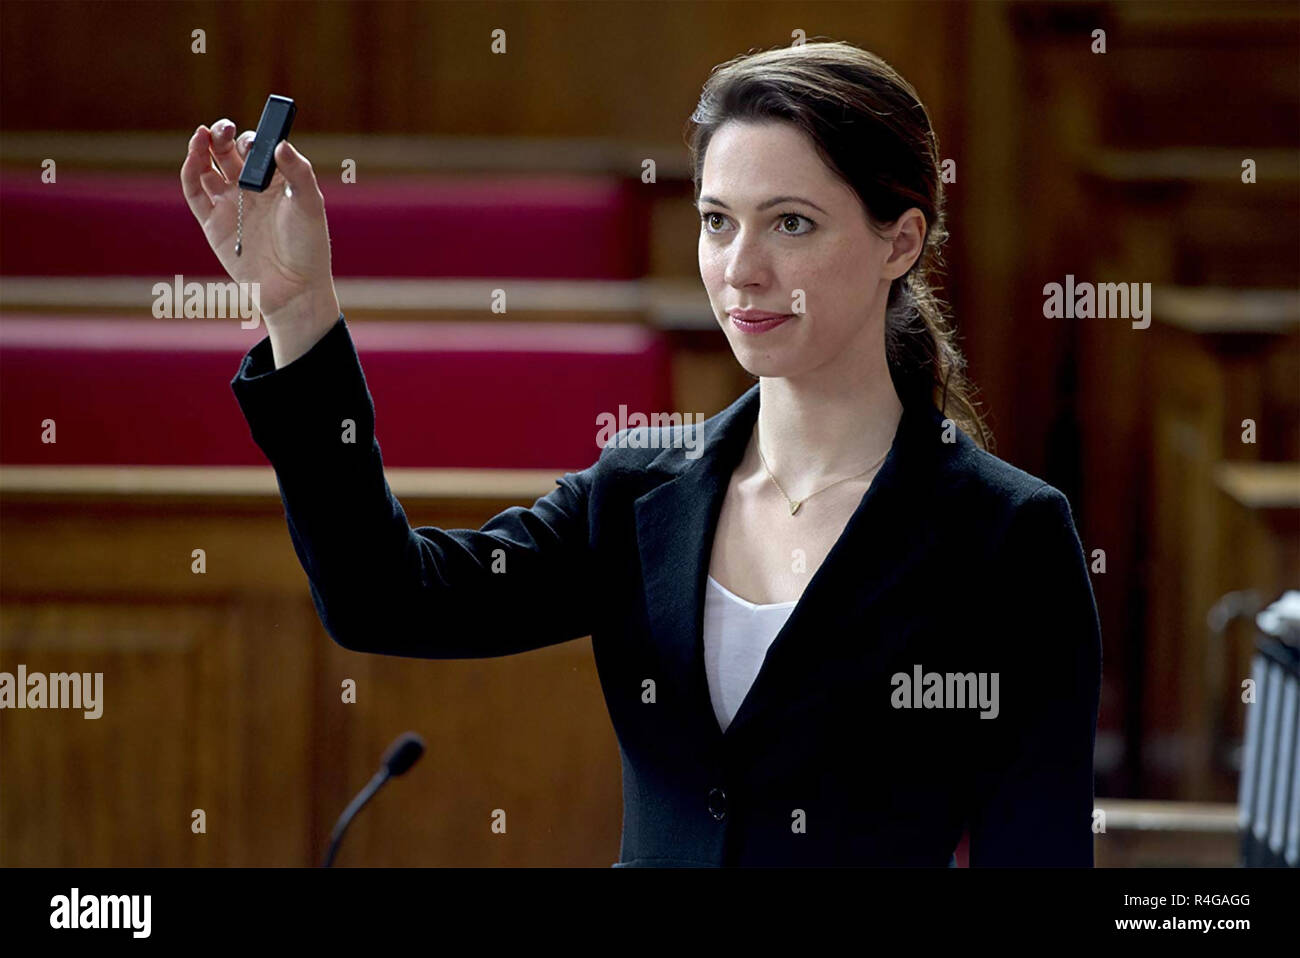 CLOSED CIRCUIT 2013 Working Title film with Rebecca Hall - Stock Image